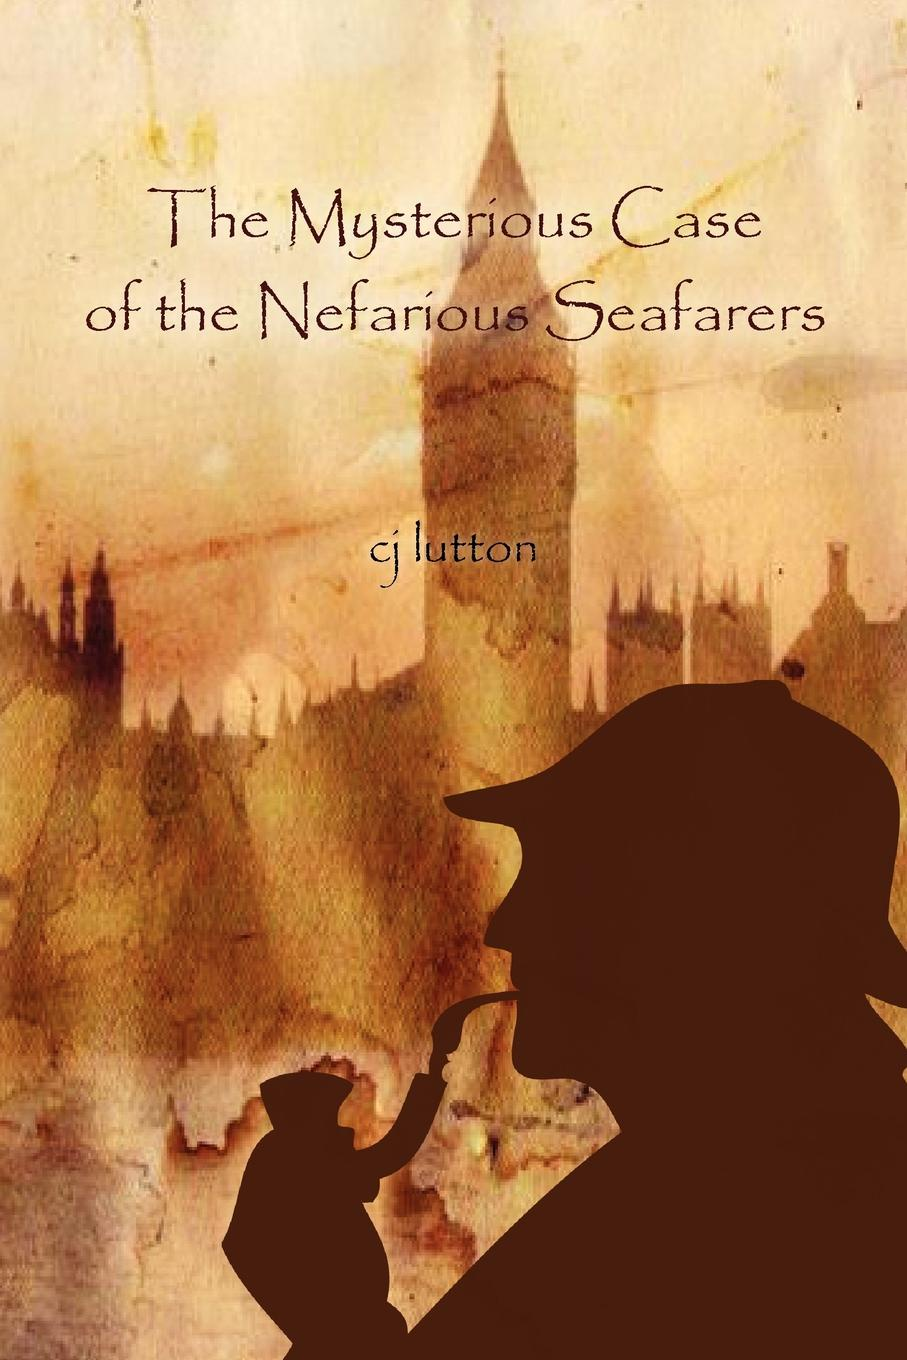 Cj Lutton The Mysterious Case of the Nefarious Seafarers